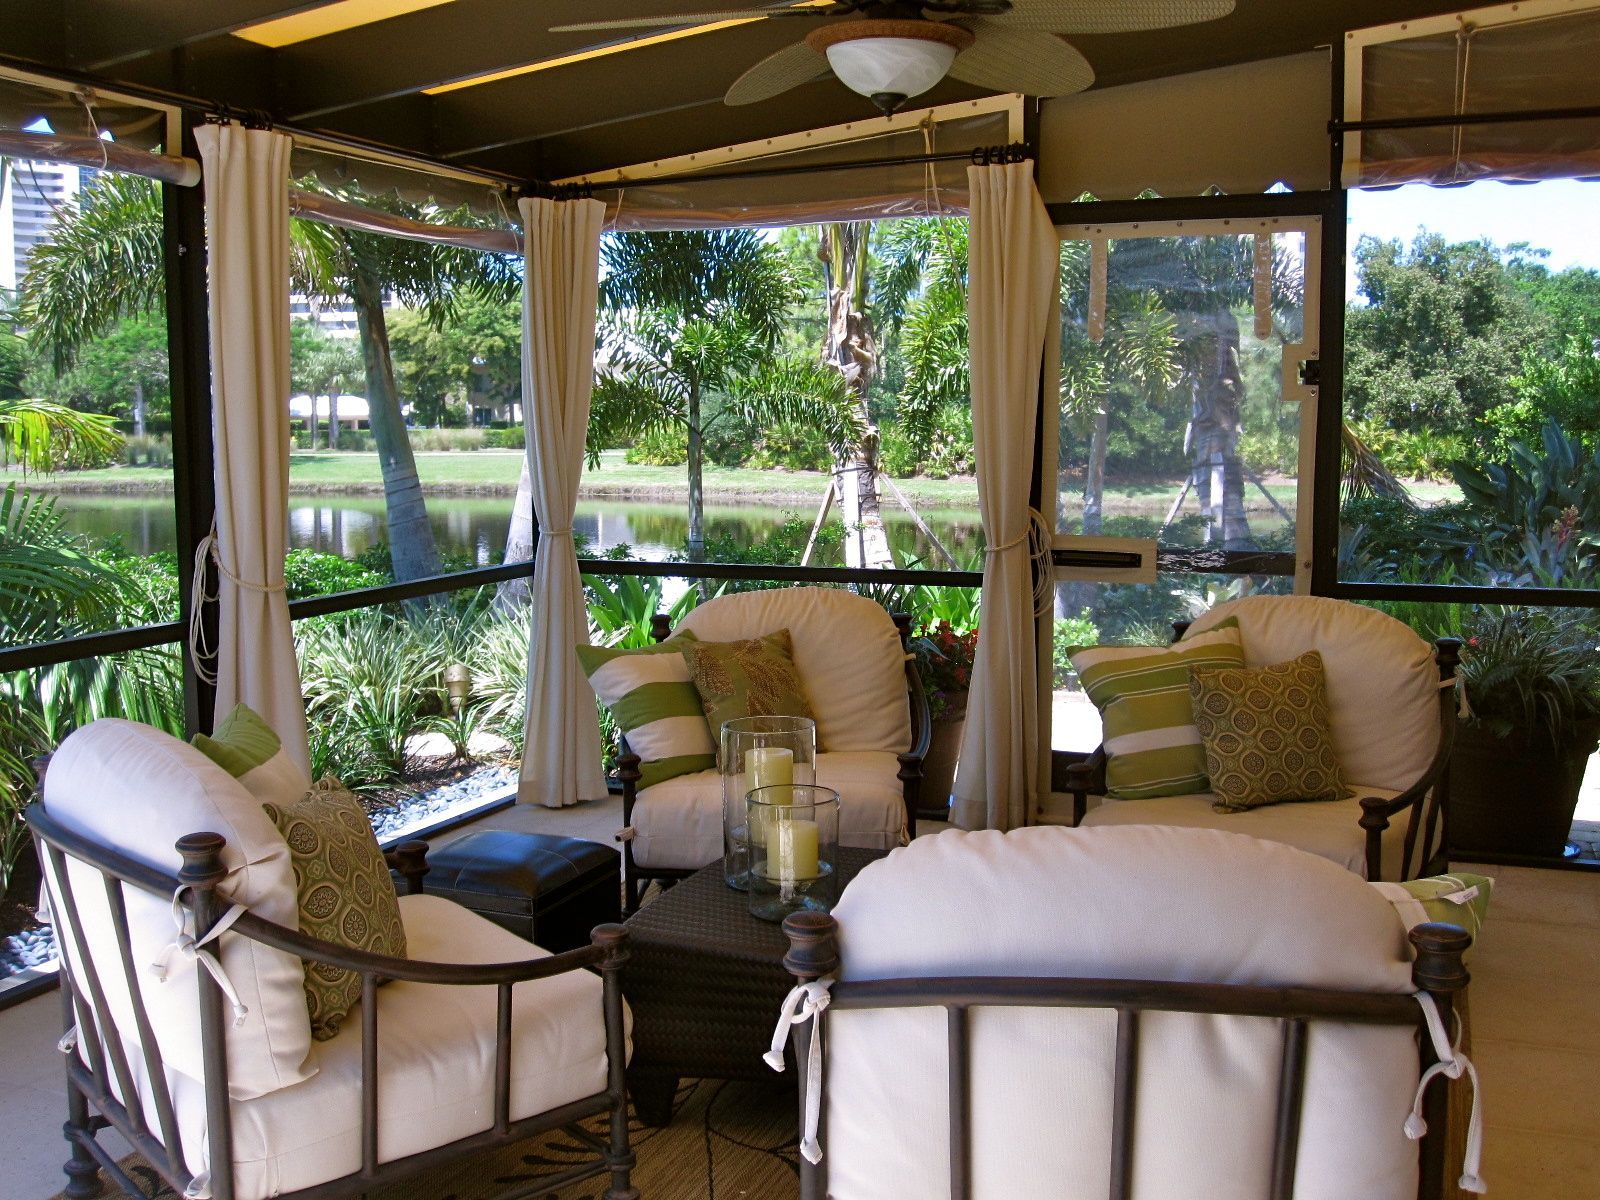 pin by pamela gentry decker on lanai lanai decorating on stunning backyard lighting design decor and remodel ideas sources to understand id=49412